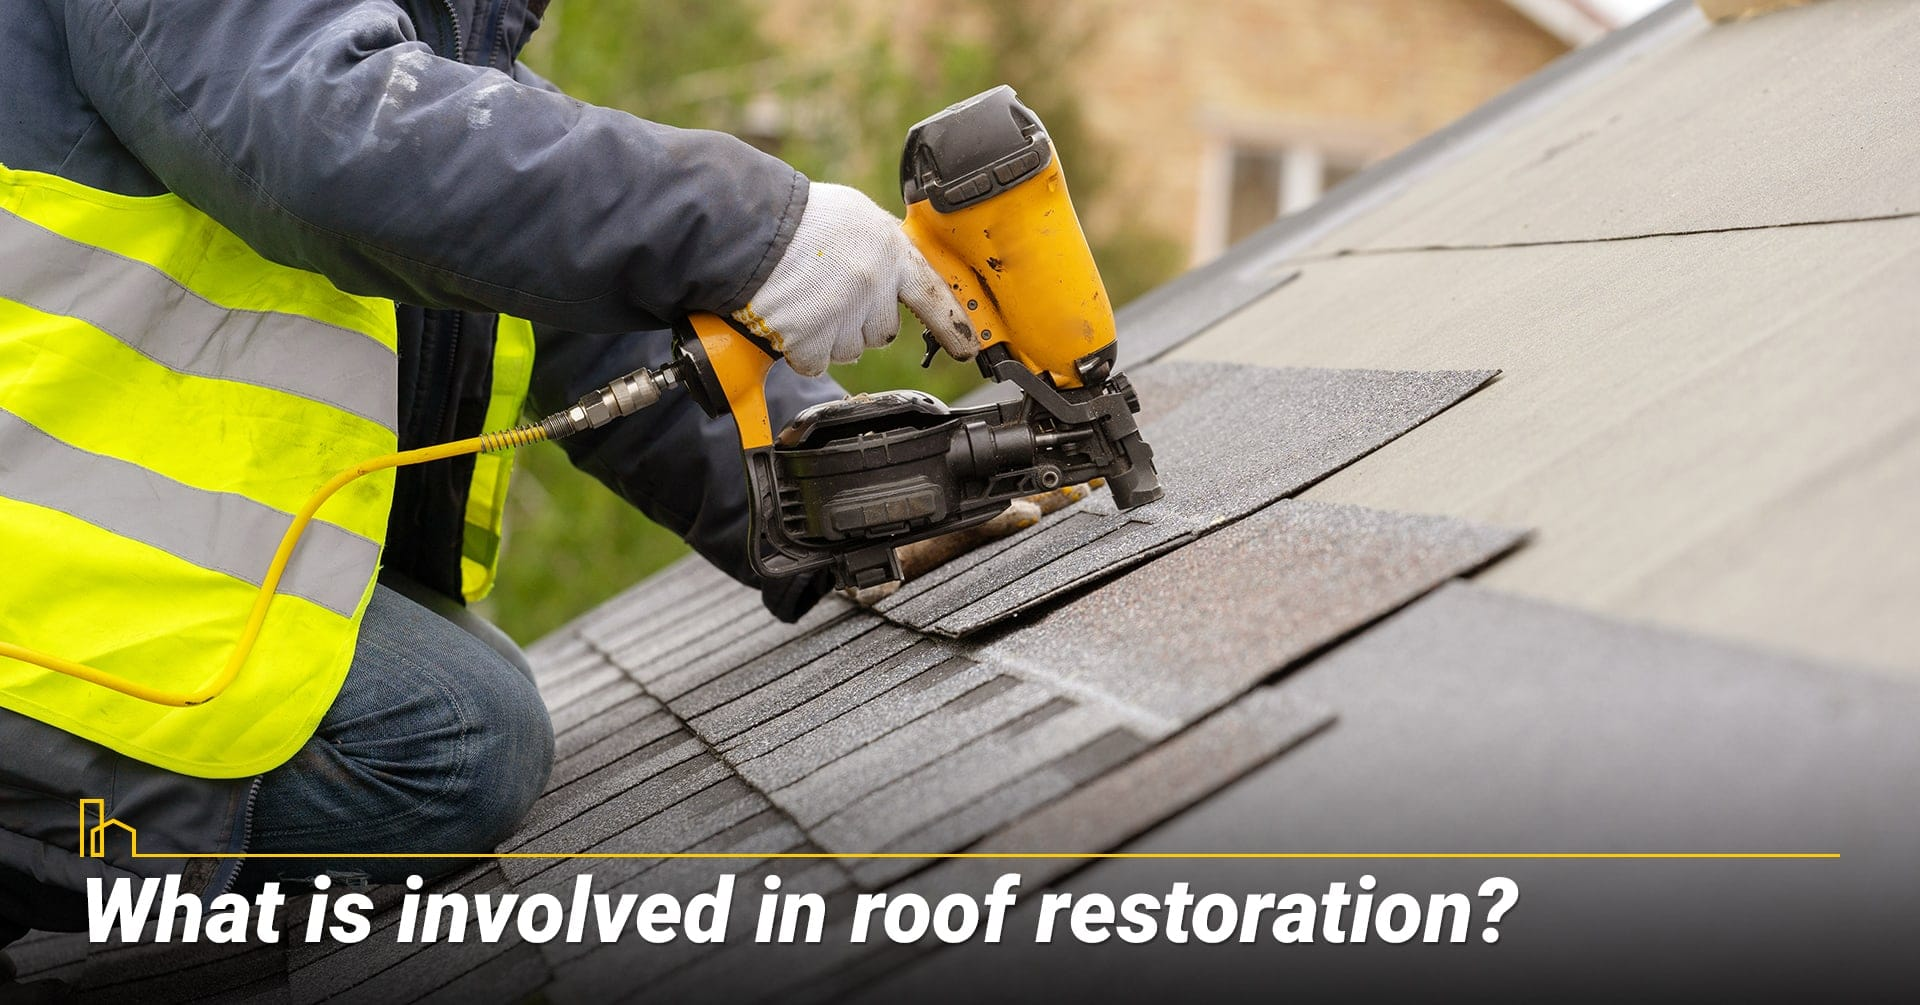 What is involved in roof restoration? steps in roof restoration